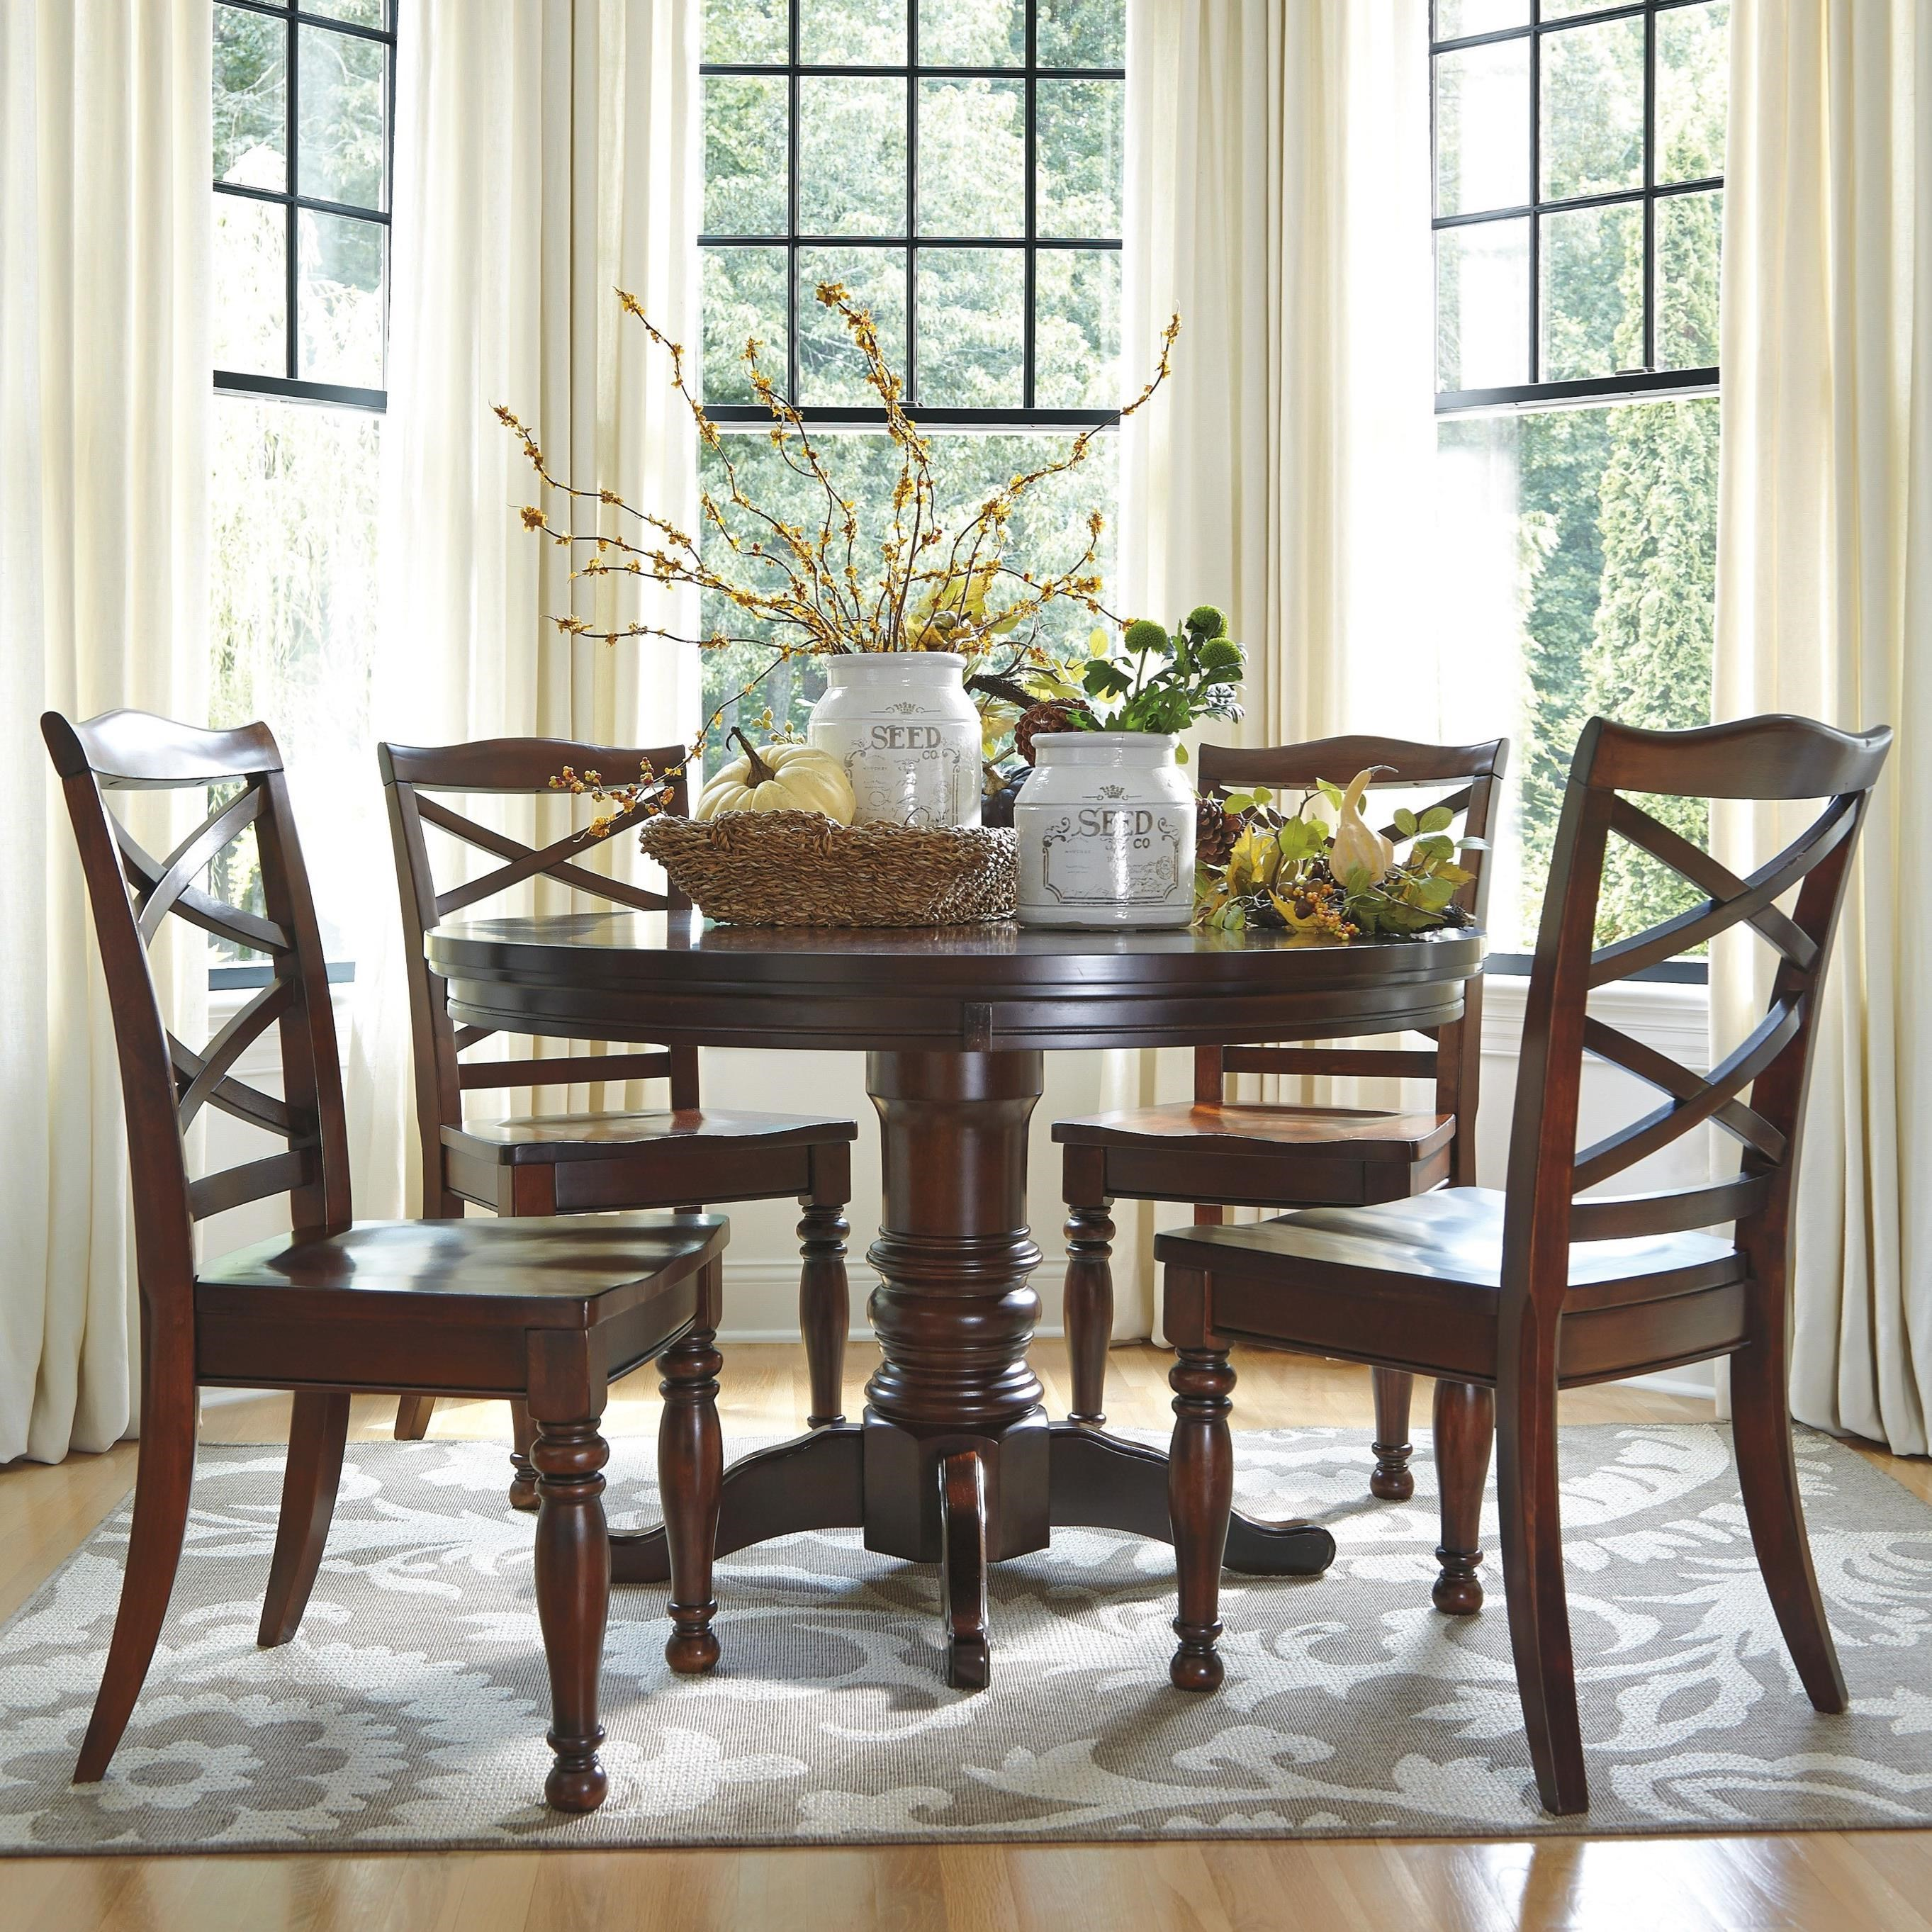 Ashley Furniture Porter Piece Round Dining Table Set John V - Ashley furniture high top table